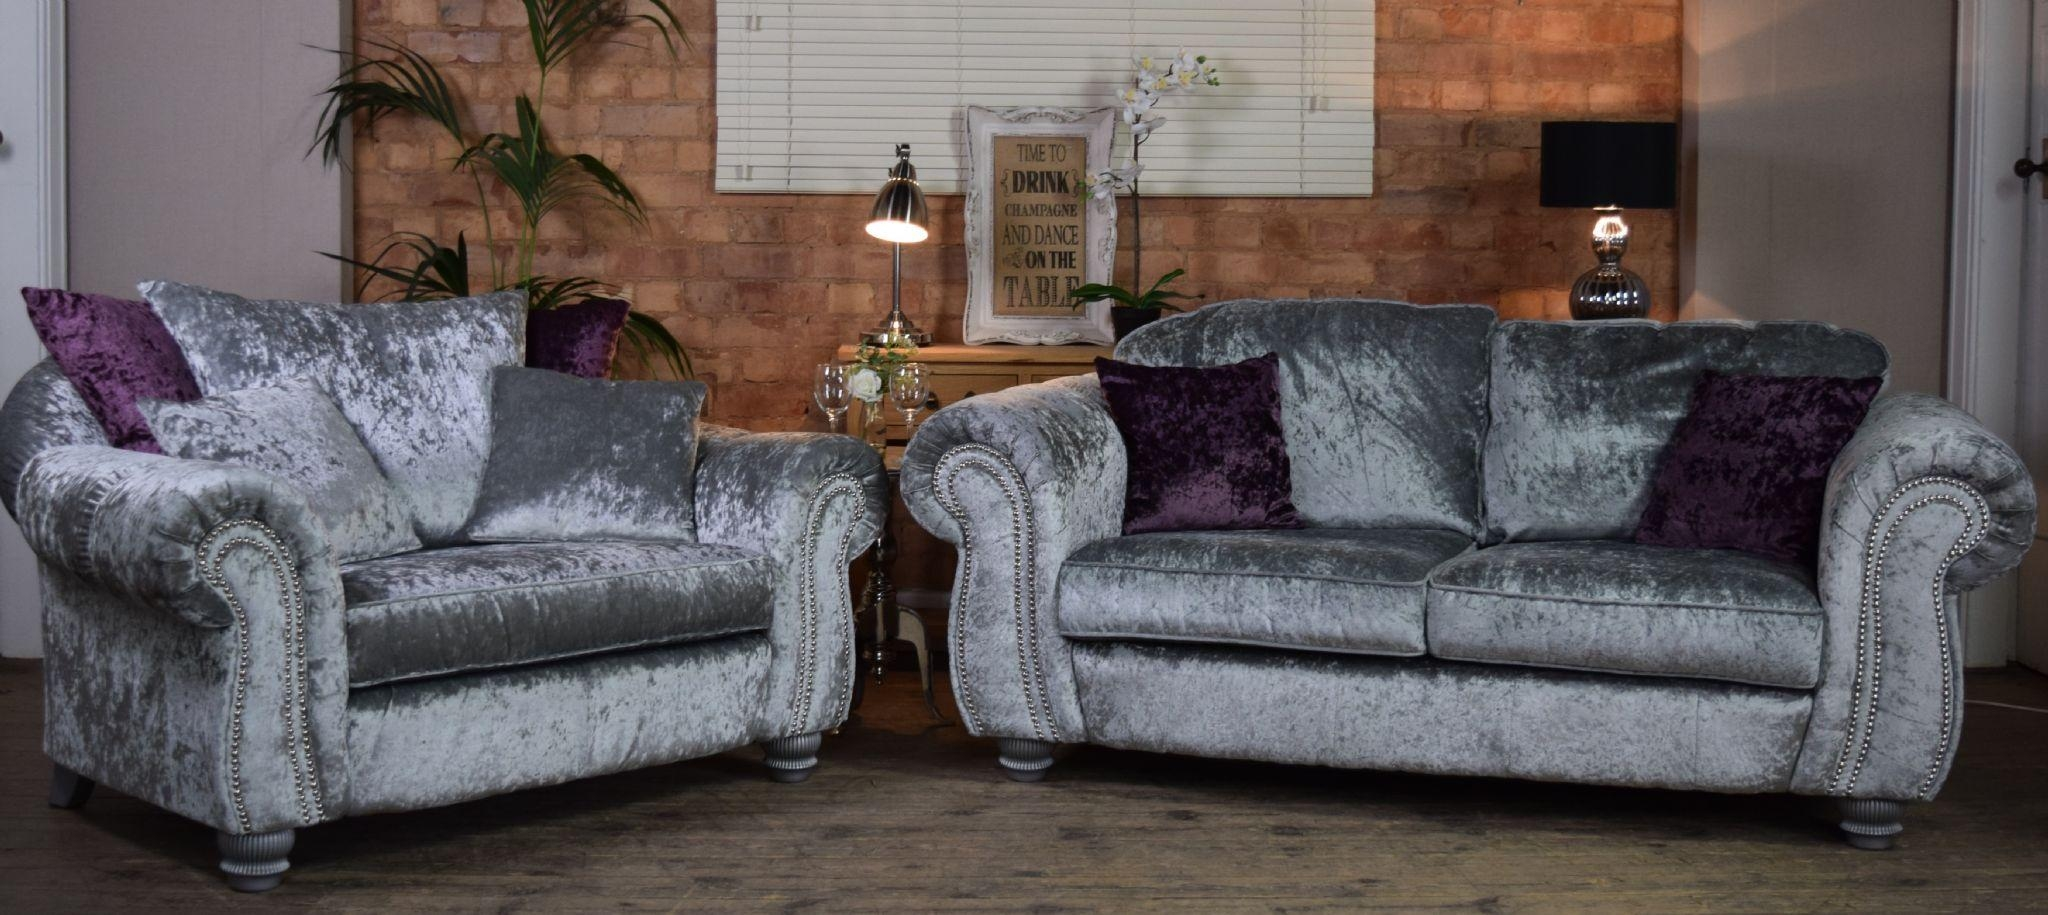 Set Luna Quantas 2 Seater Sofa Cuddle Chair Suite Set – Silver Pertaining To 3 Seater Sofa And Cuddle Chairs (Image 7 of 20)